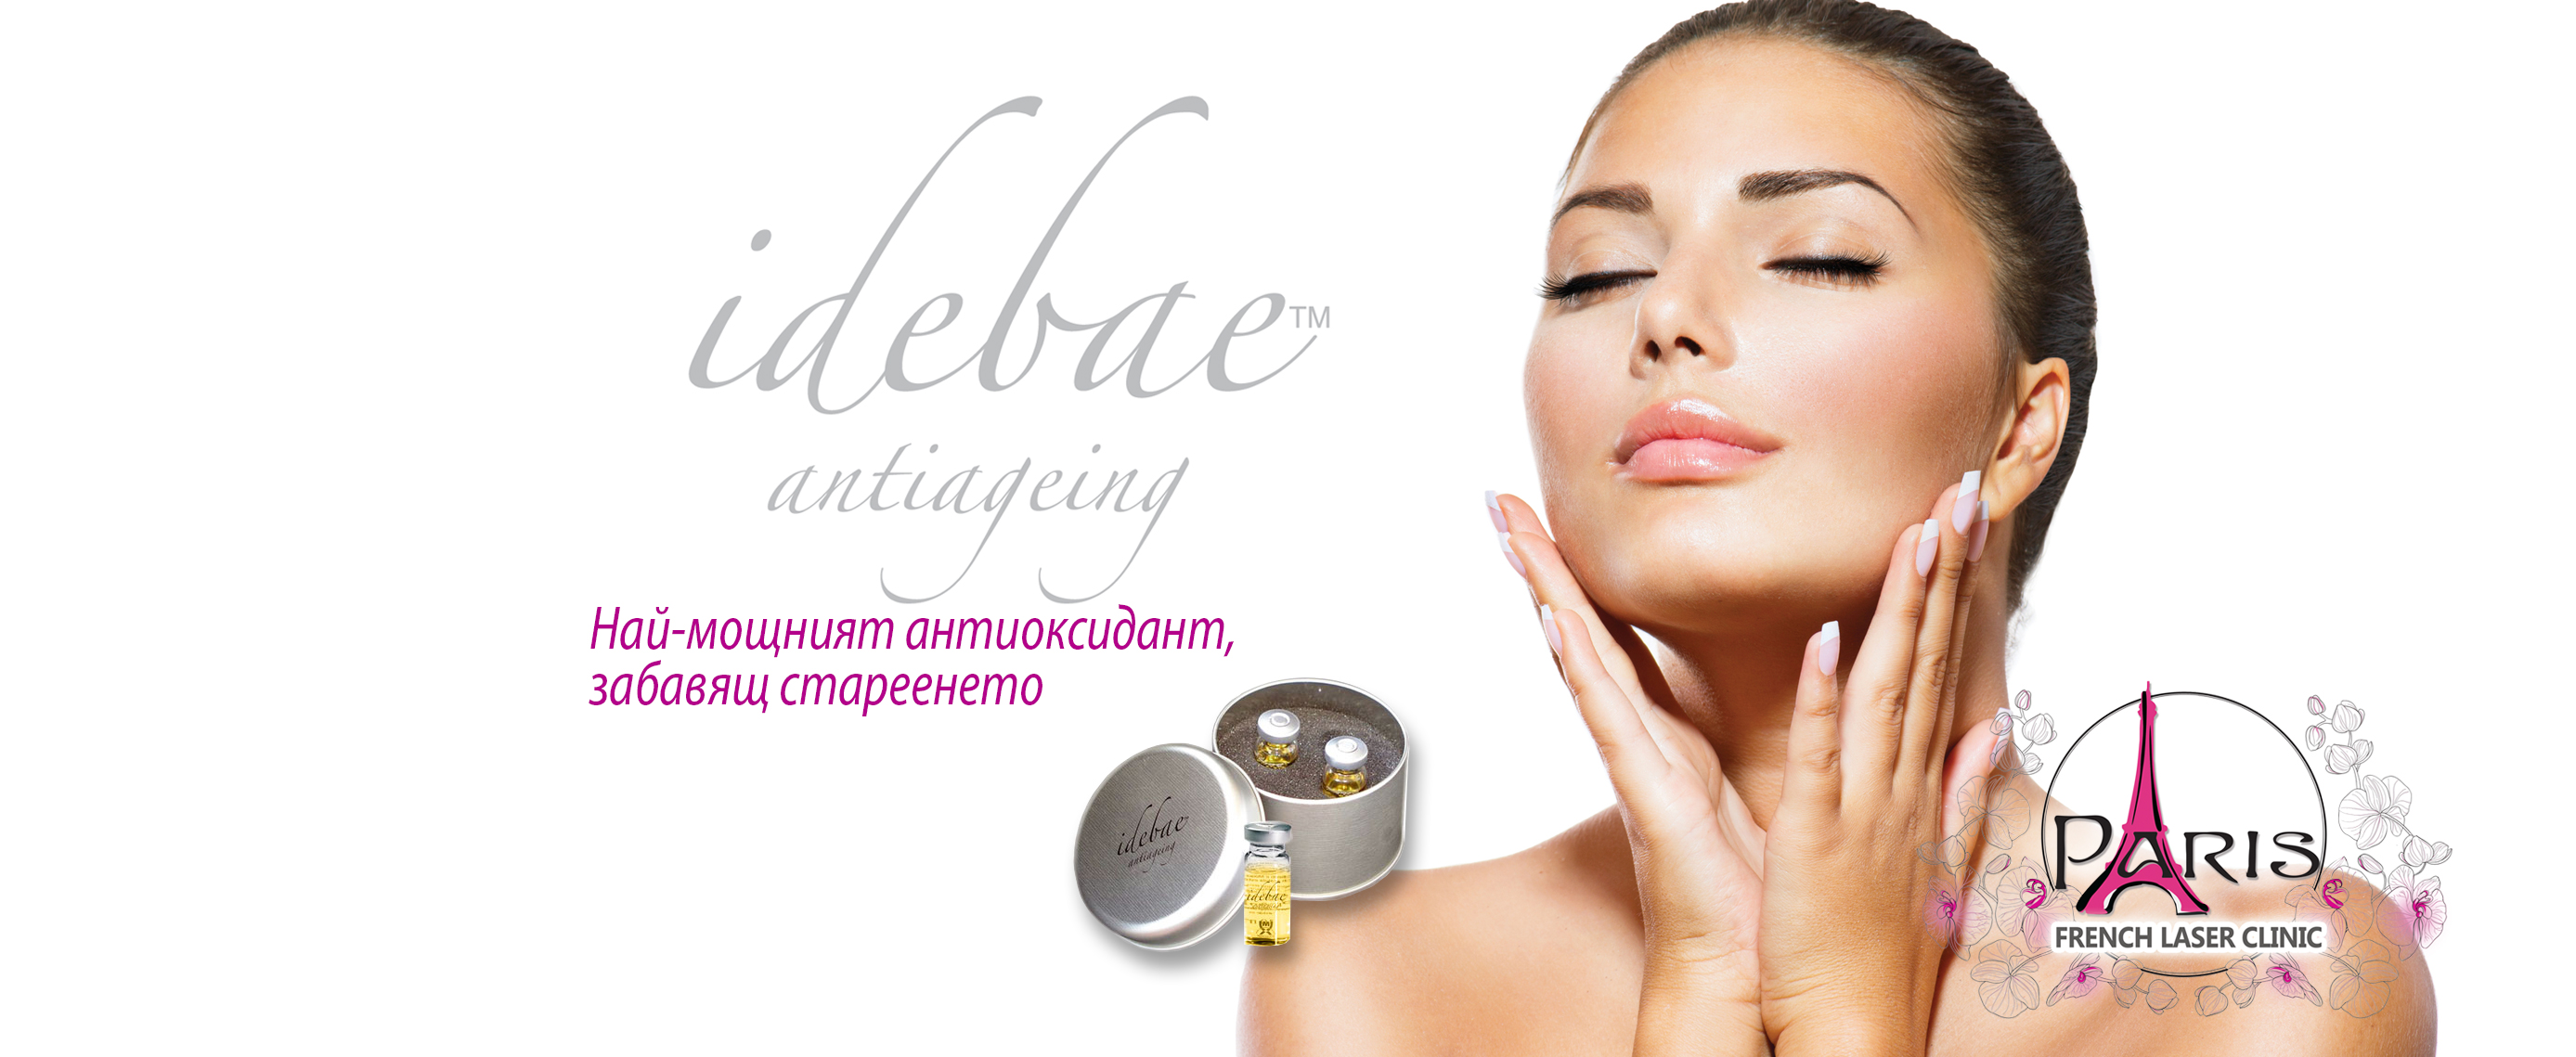 Мезотерапия Idebae-anti-age-promoitalia-slider_LASER_CLINIC_PARIS